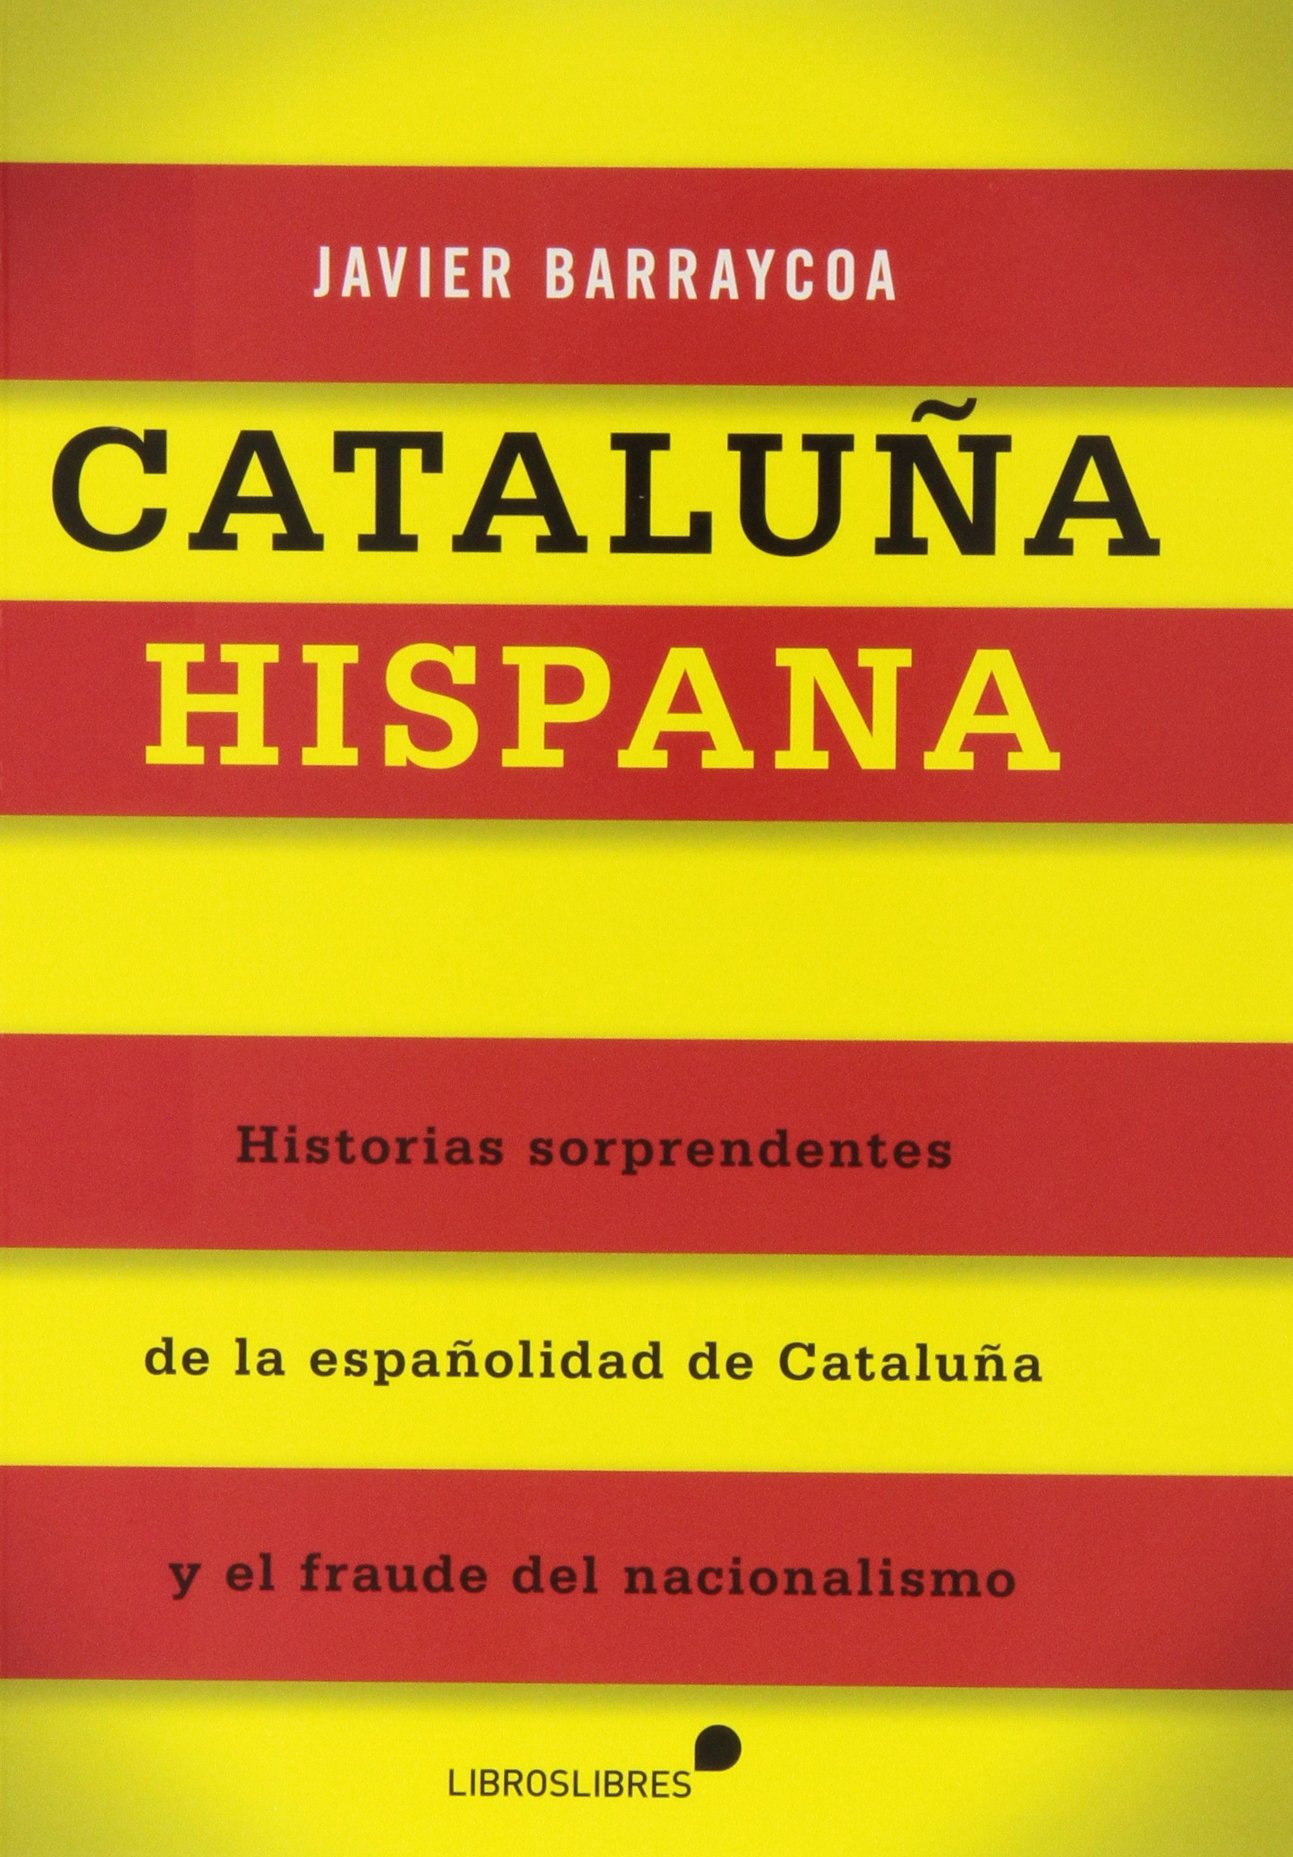 CATALUÑA HISPANA (General): Amazon.es: Barraycoa, Javier: Libros